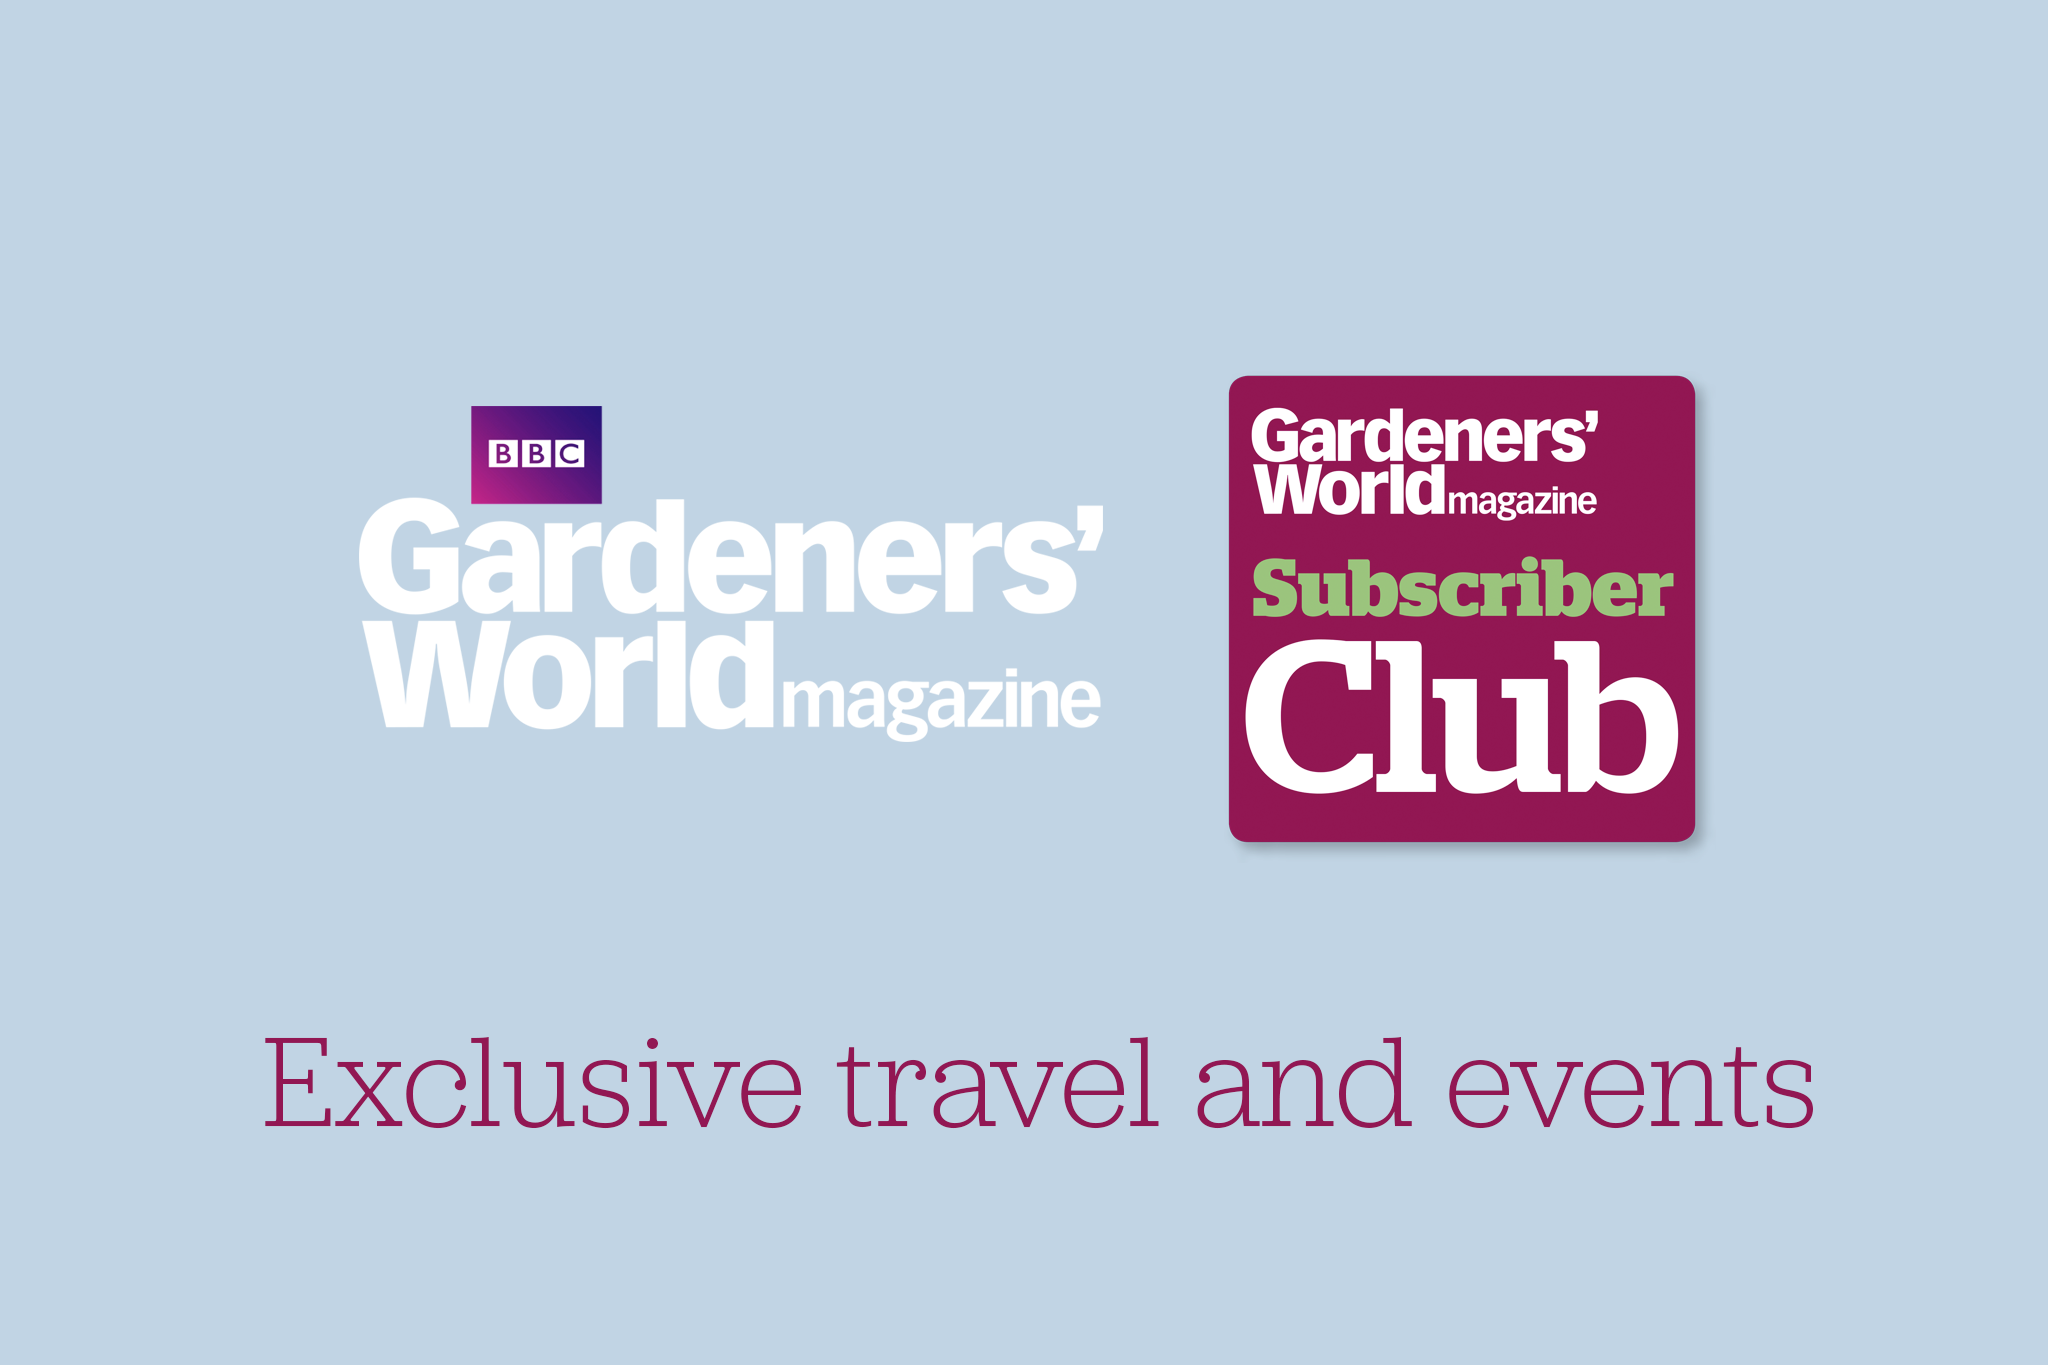 Events and exclusive travel from BBC Gardeners World Magazine